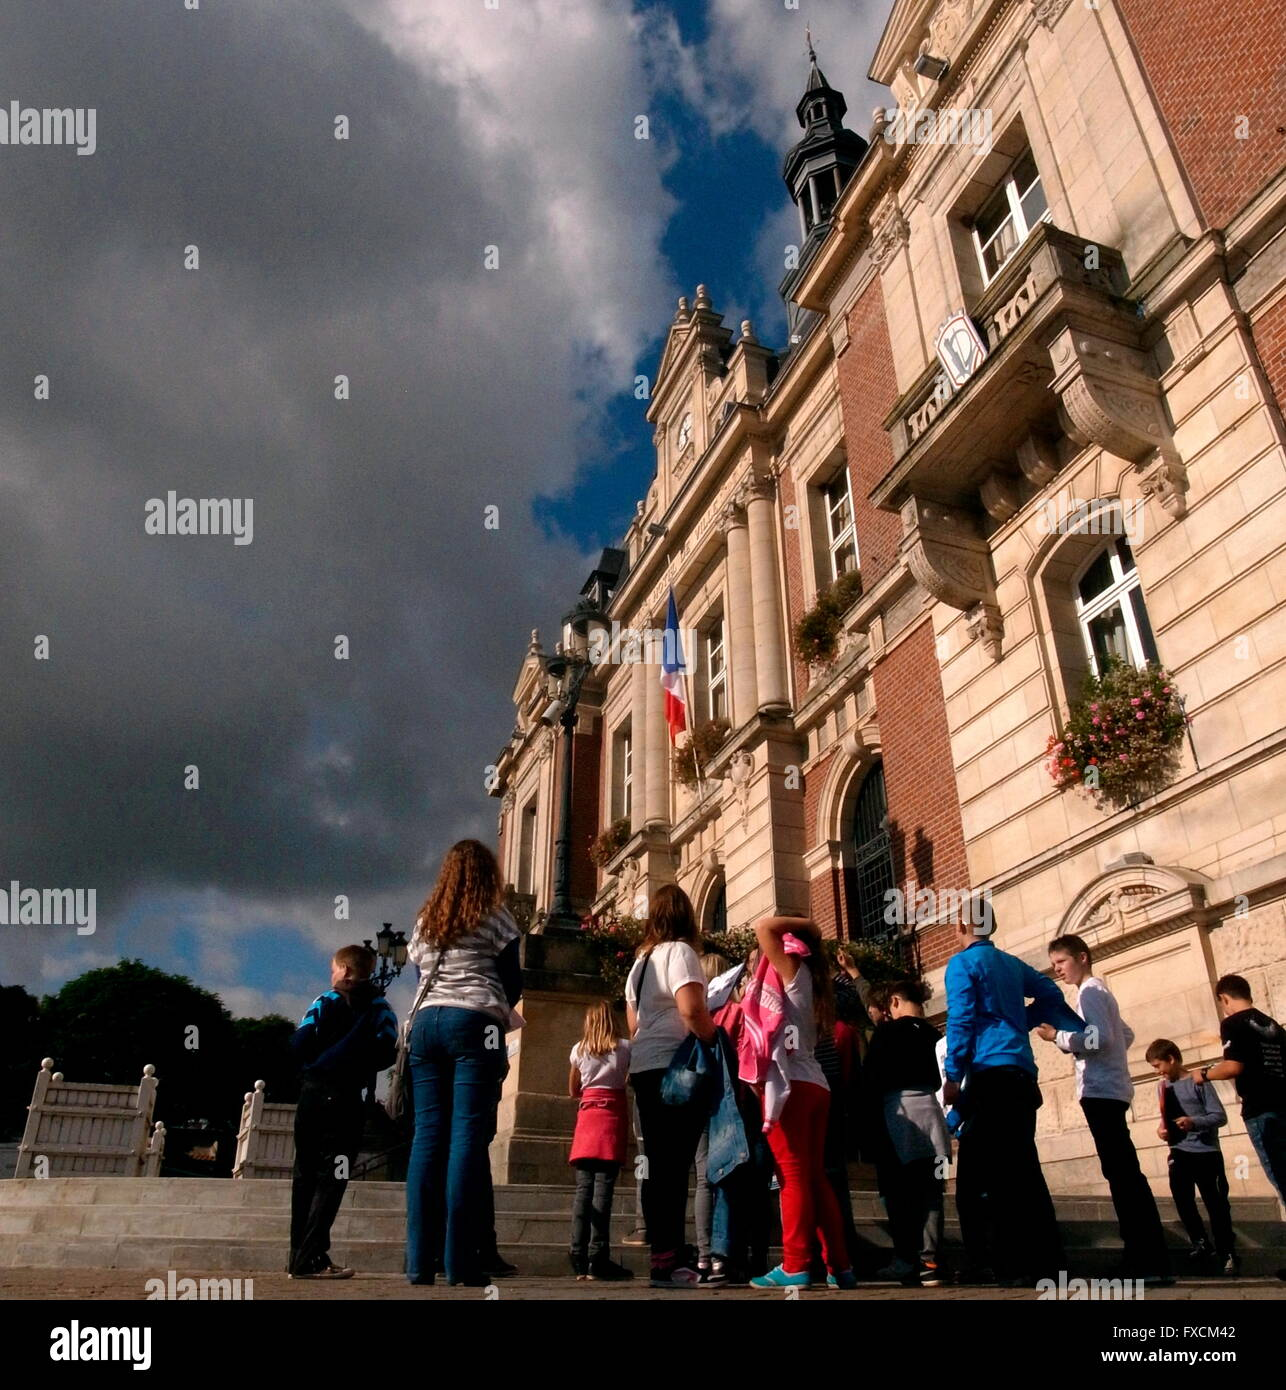 AJAXNETPHOTO. 2014. DOULLENS, FRANCE. - WW1 ARMY H.Q. - A PARTY OF SCHOOLCHILDREN VISIT THE TOWN'S HOTEL DE - Stock Image